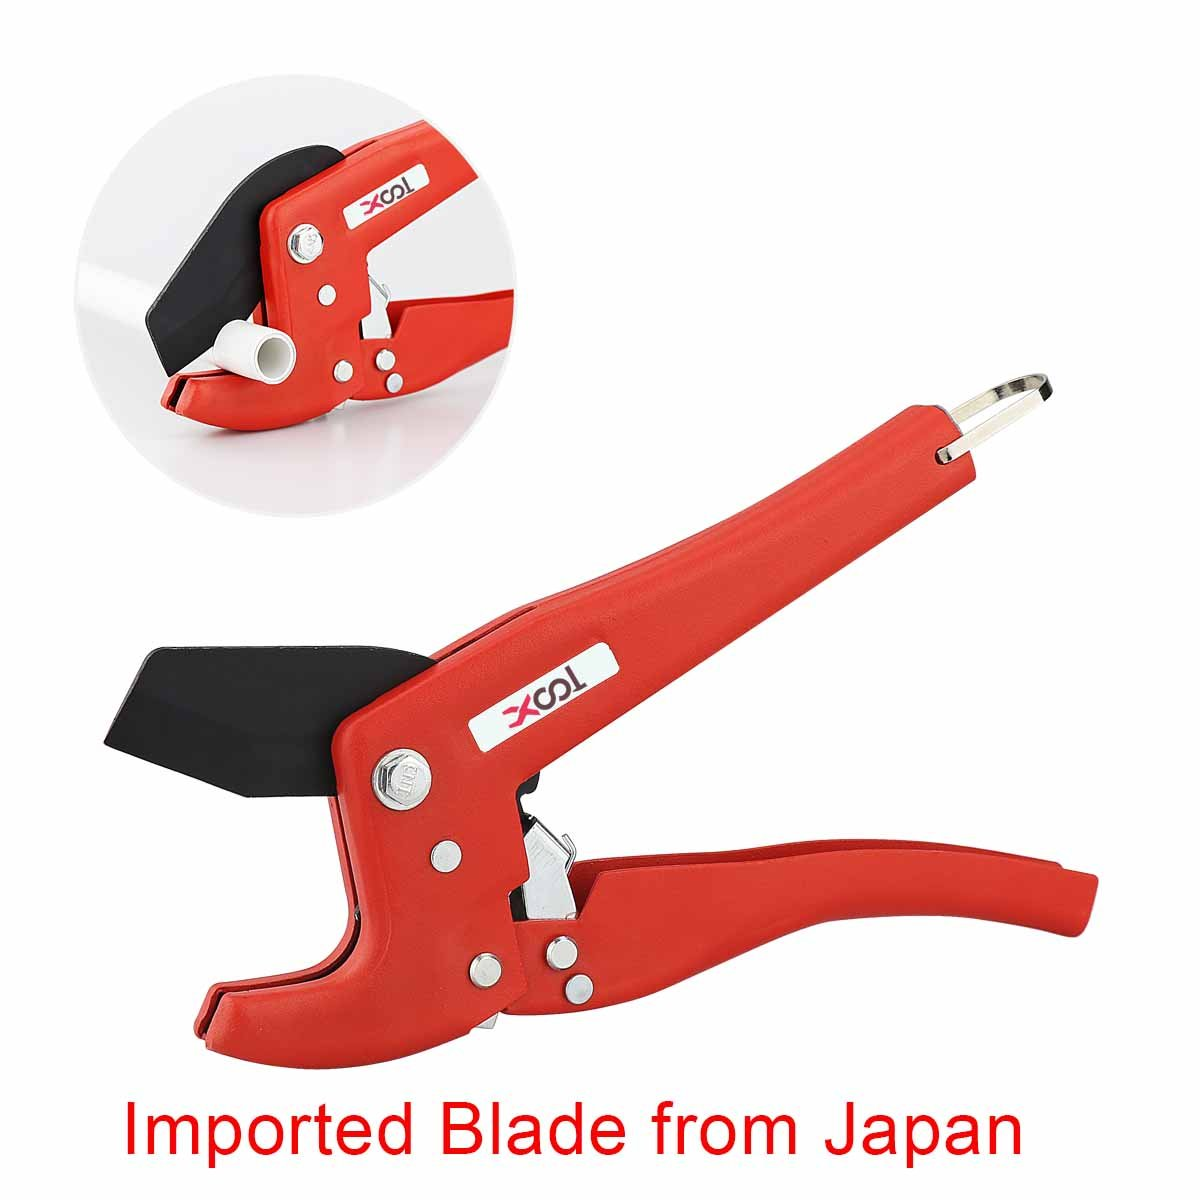 Pipe and Tube Cutter, Ratcheting Hose Cutter, One-hand Fast Pipe Cutting Tool with Ratchet Drive for Cutting Less Than 1-1/4'' O.D. PEX, PVC, and PPR Pipe, Ideal for Plumbers, Home Handy Man and More